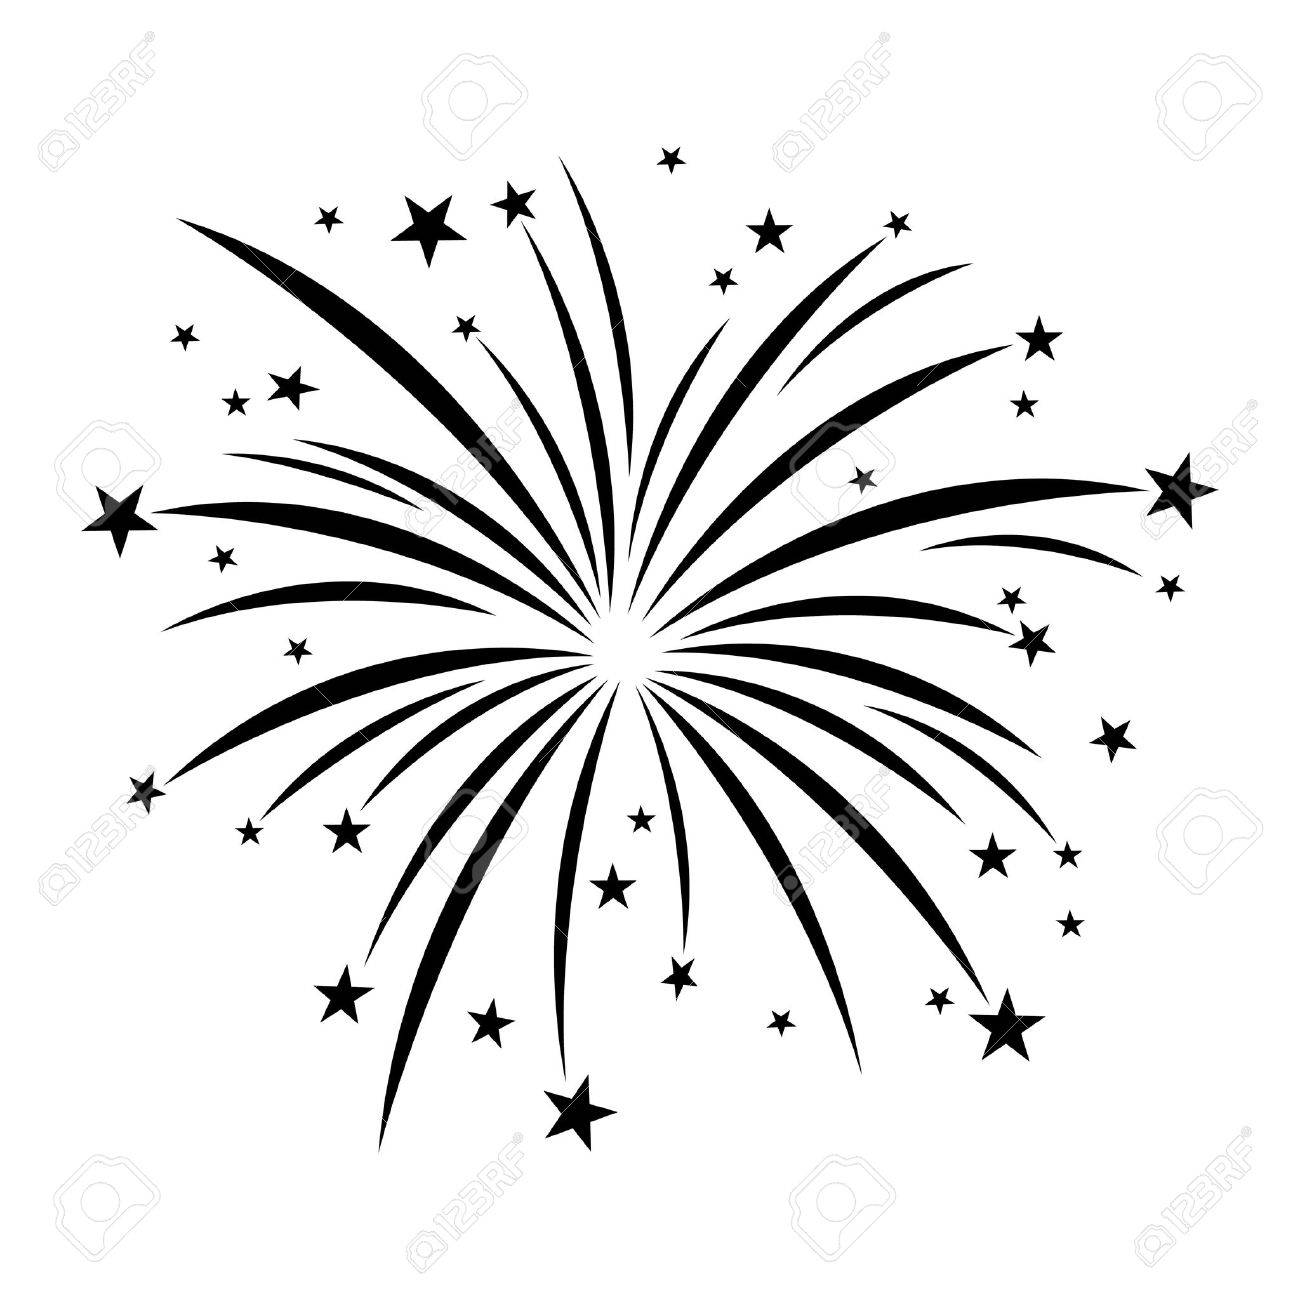 fireworks vector icon royalty free cliparts vectors and stock rh 123rf com fireworks vector graphics fireworks vector images